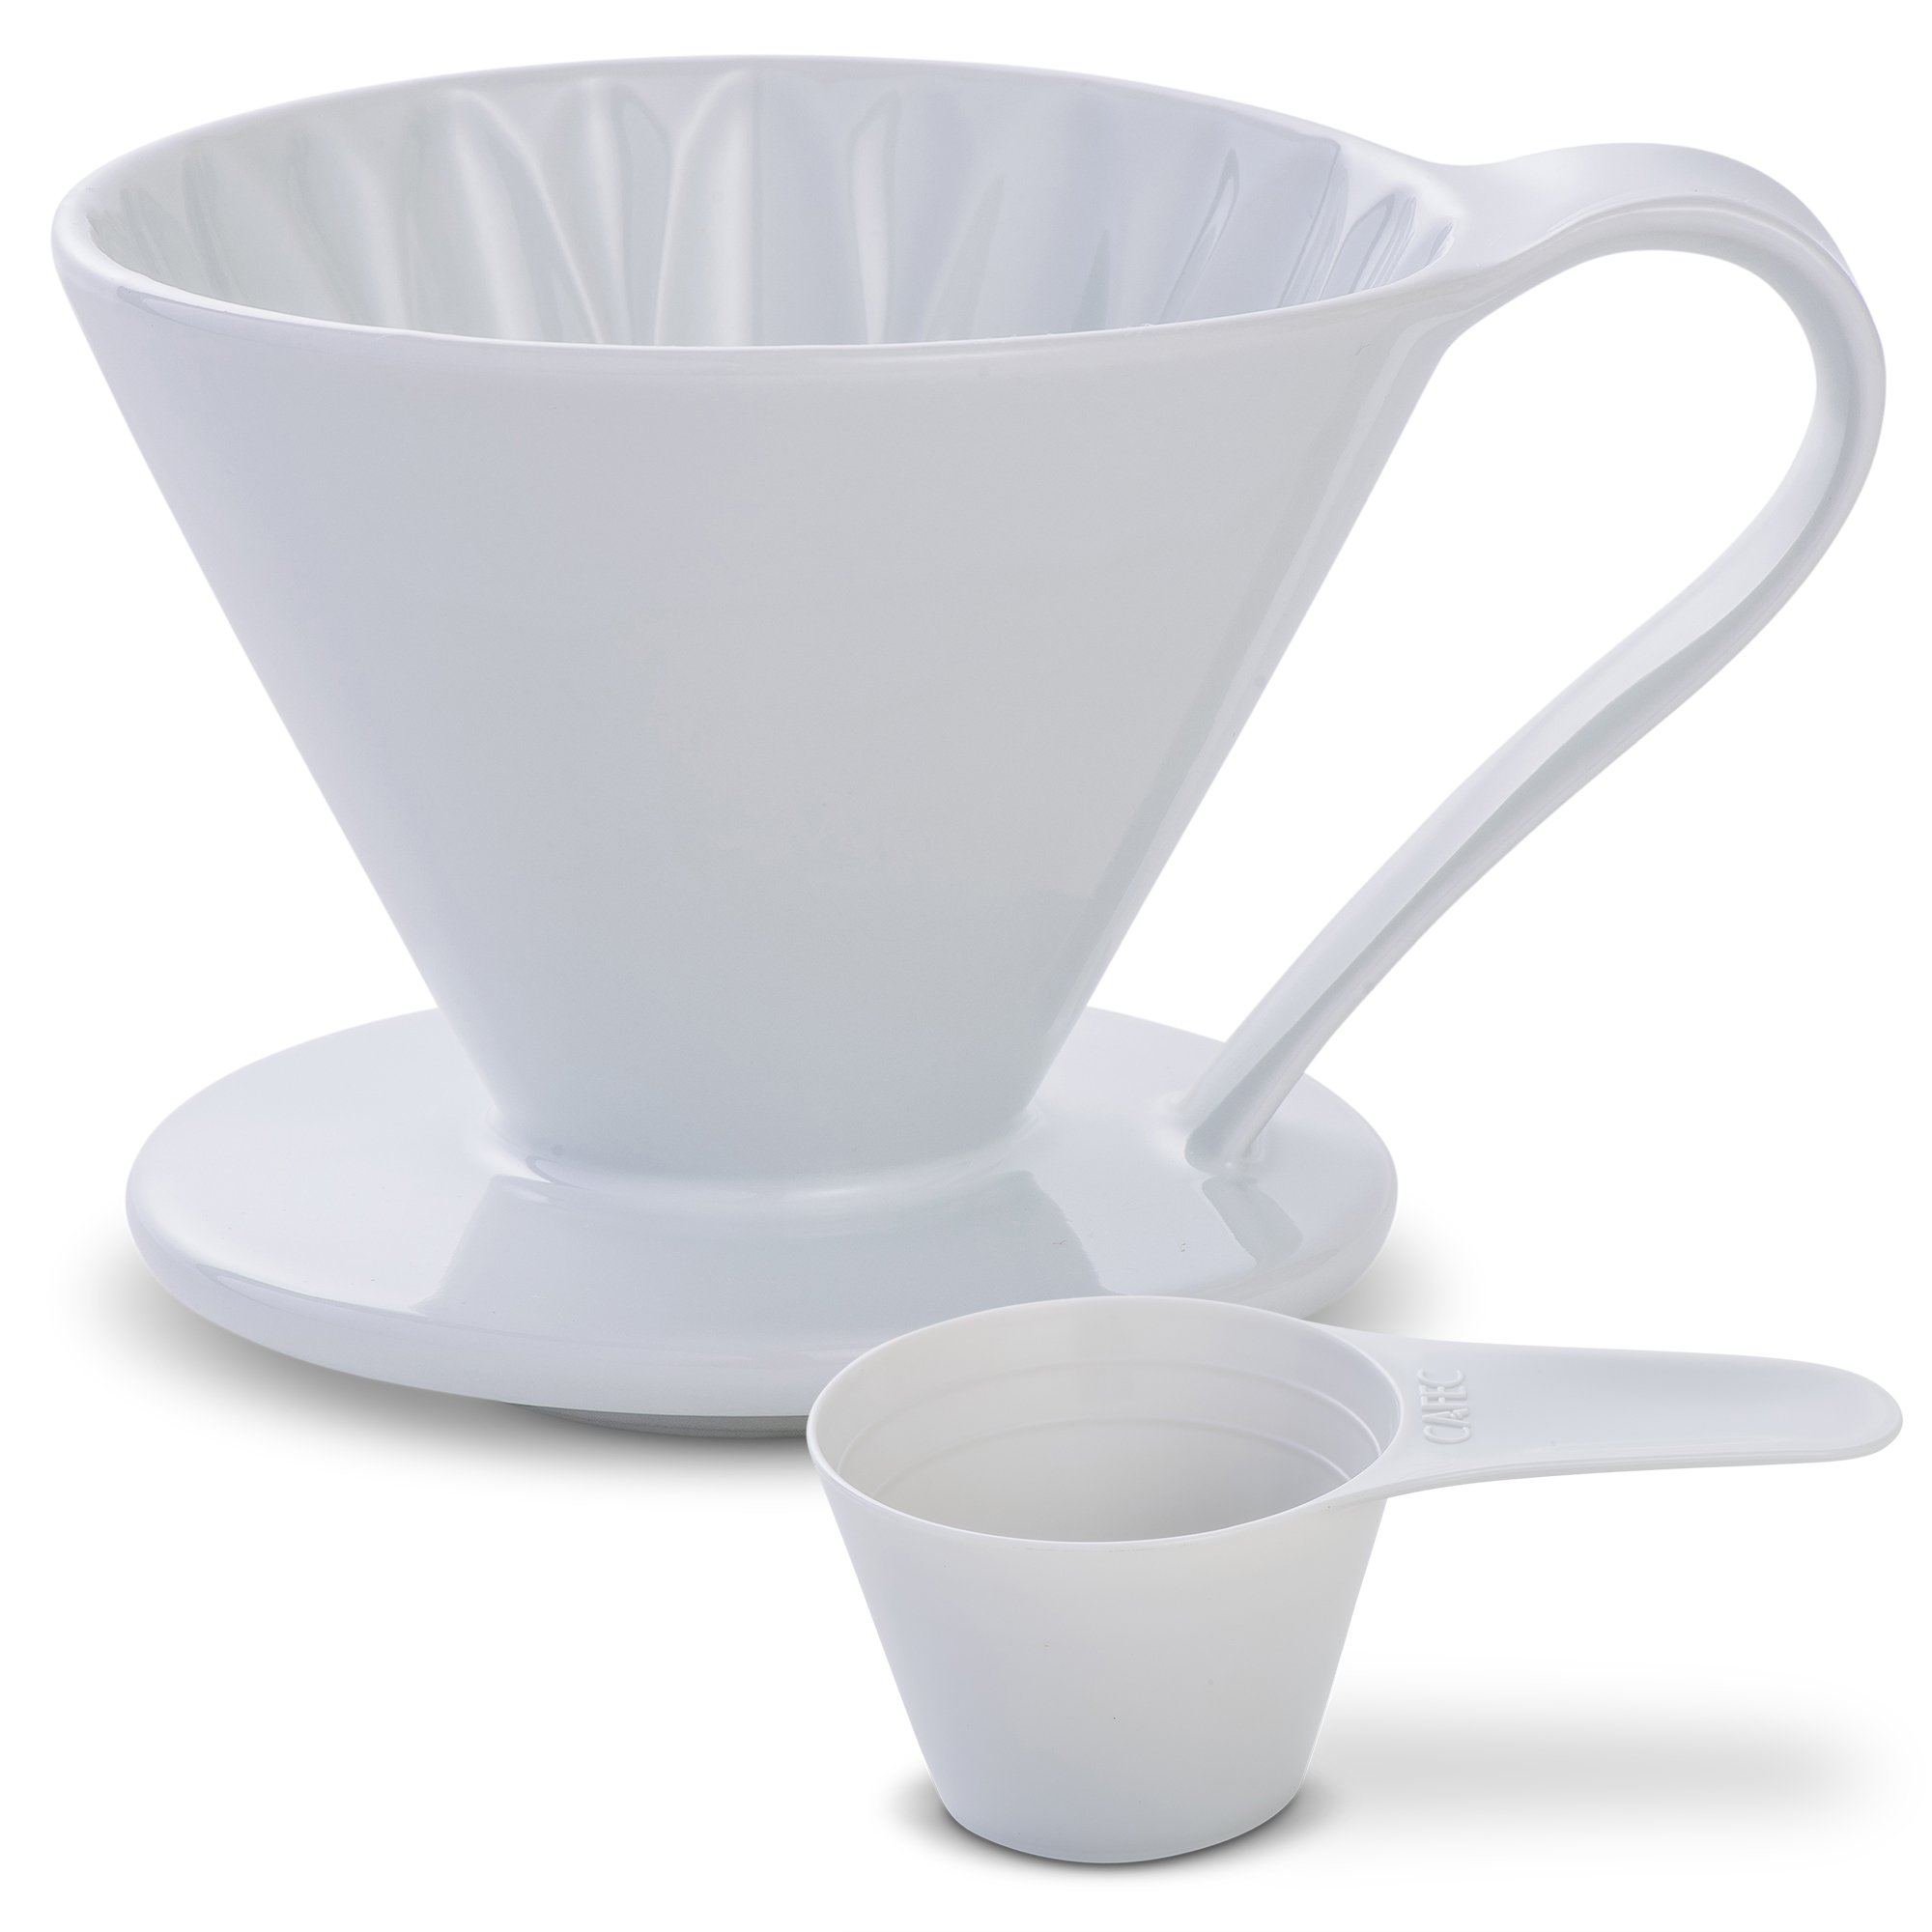 5 Beautiful COLORS: Pour Over Coffee Dripper by Sanyo Sangyo: Porcelain Ceramic 1-to-4 Cup Brewer | Unique Drip Coffee Maker For Fresh Filter Coffee-Elegant Smart Design: Better Brewing (White) by CAFEC